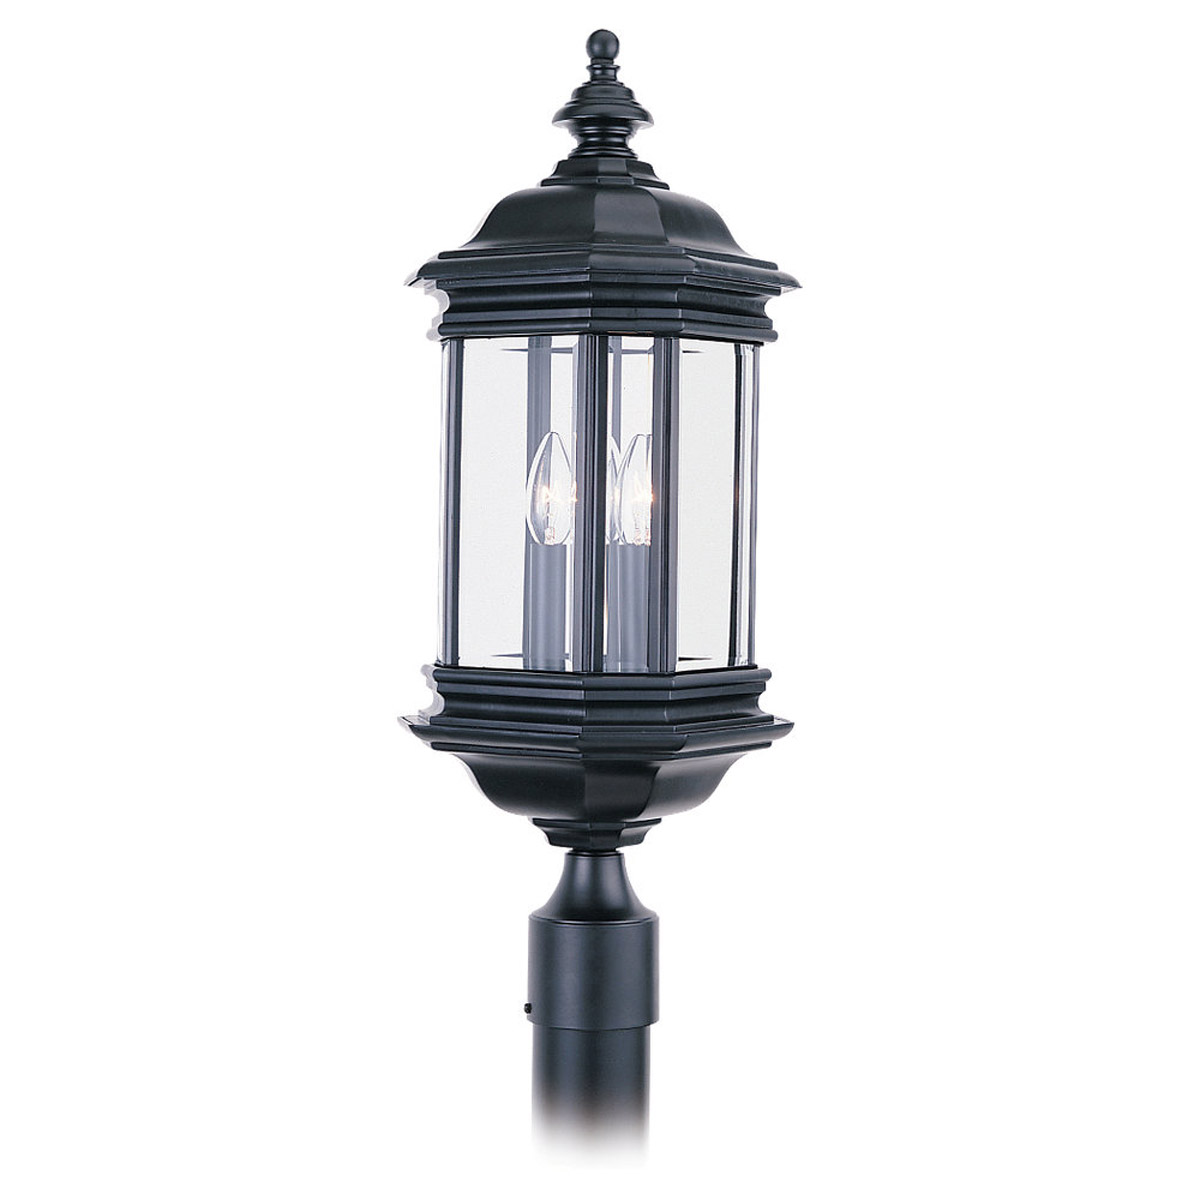 Sea Gull Lighting Hill Gate 3 Light Outdoor Post Lantern in Black 8238-12